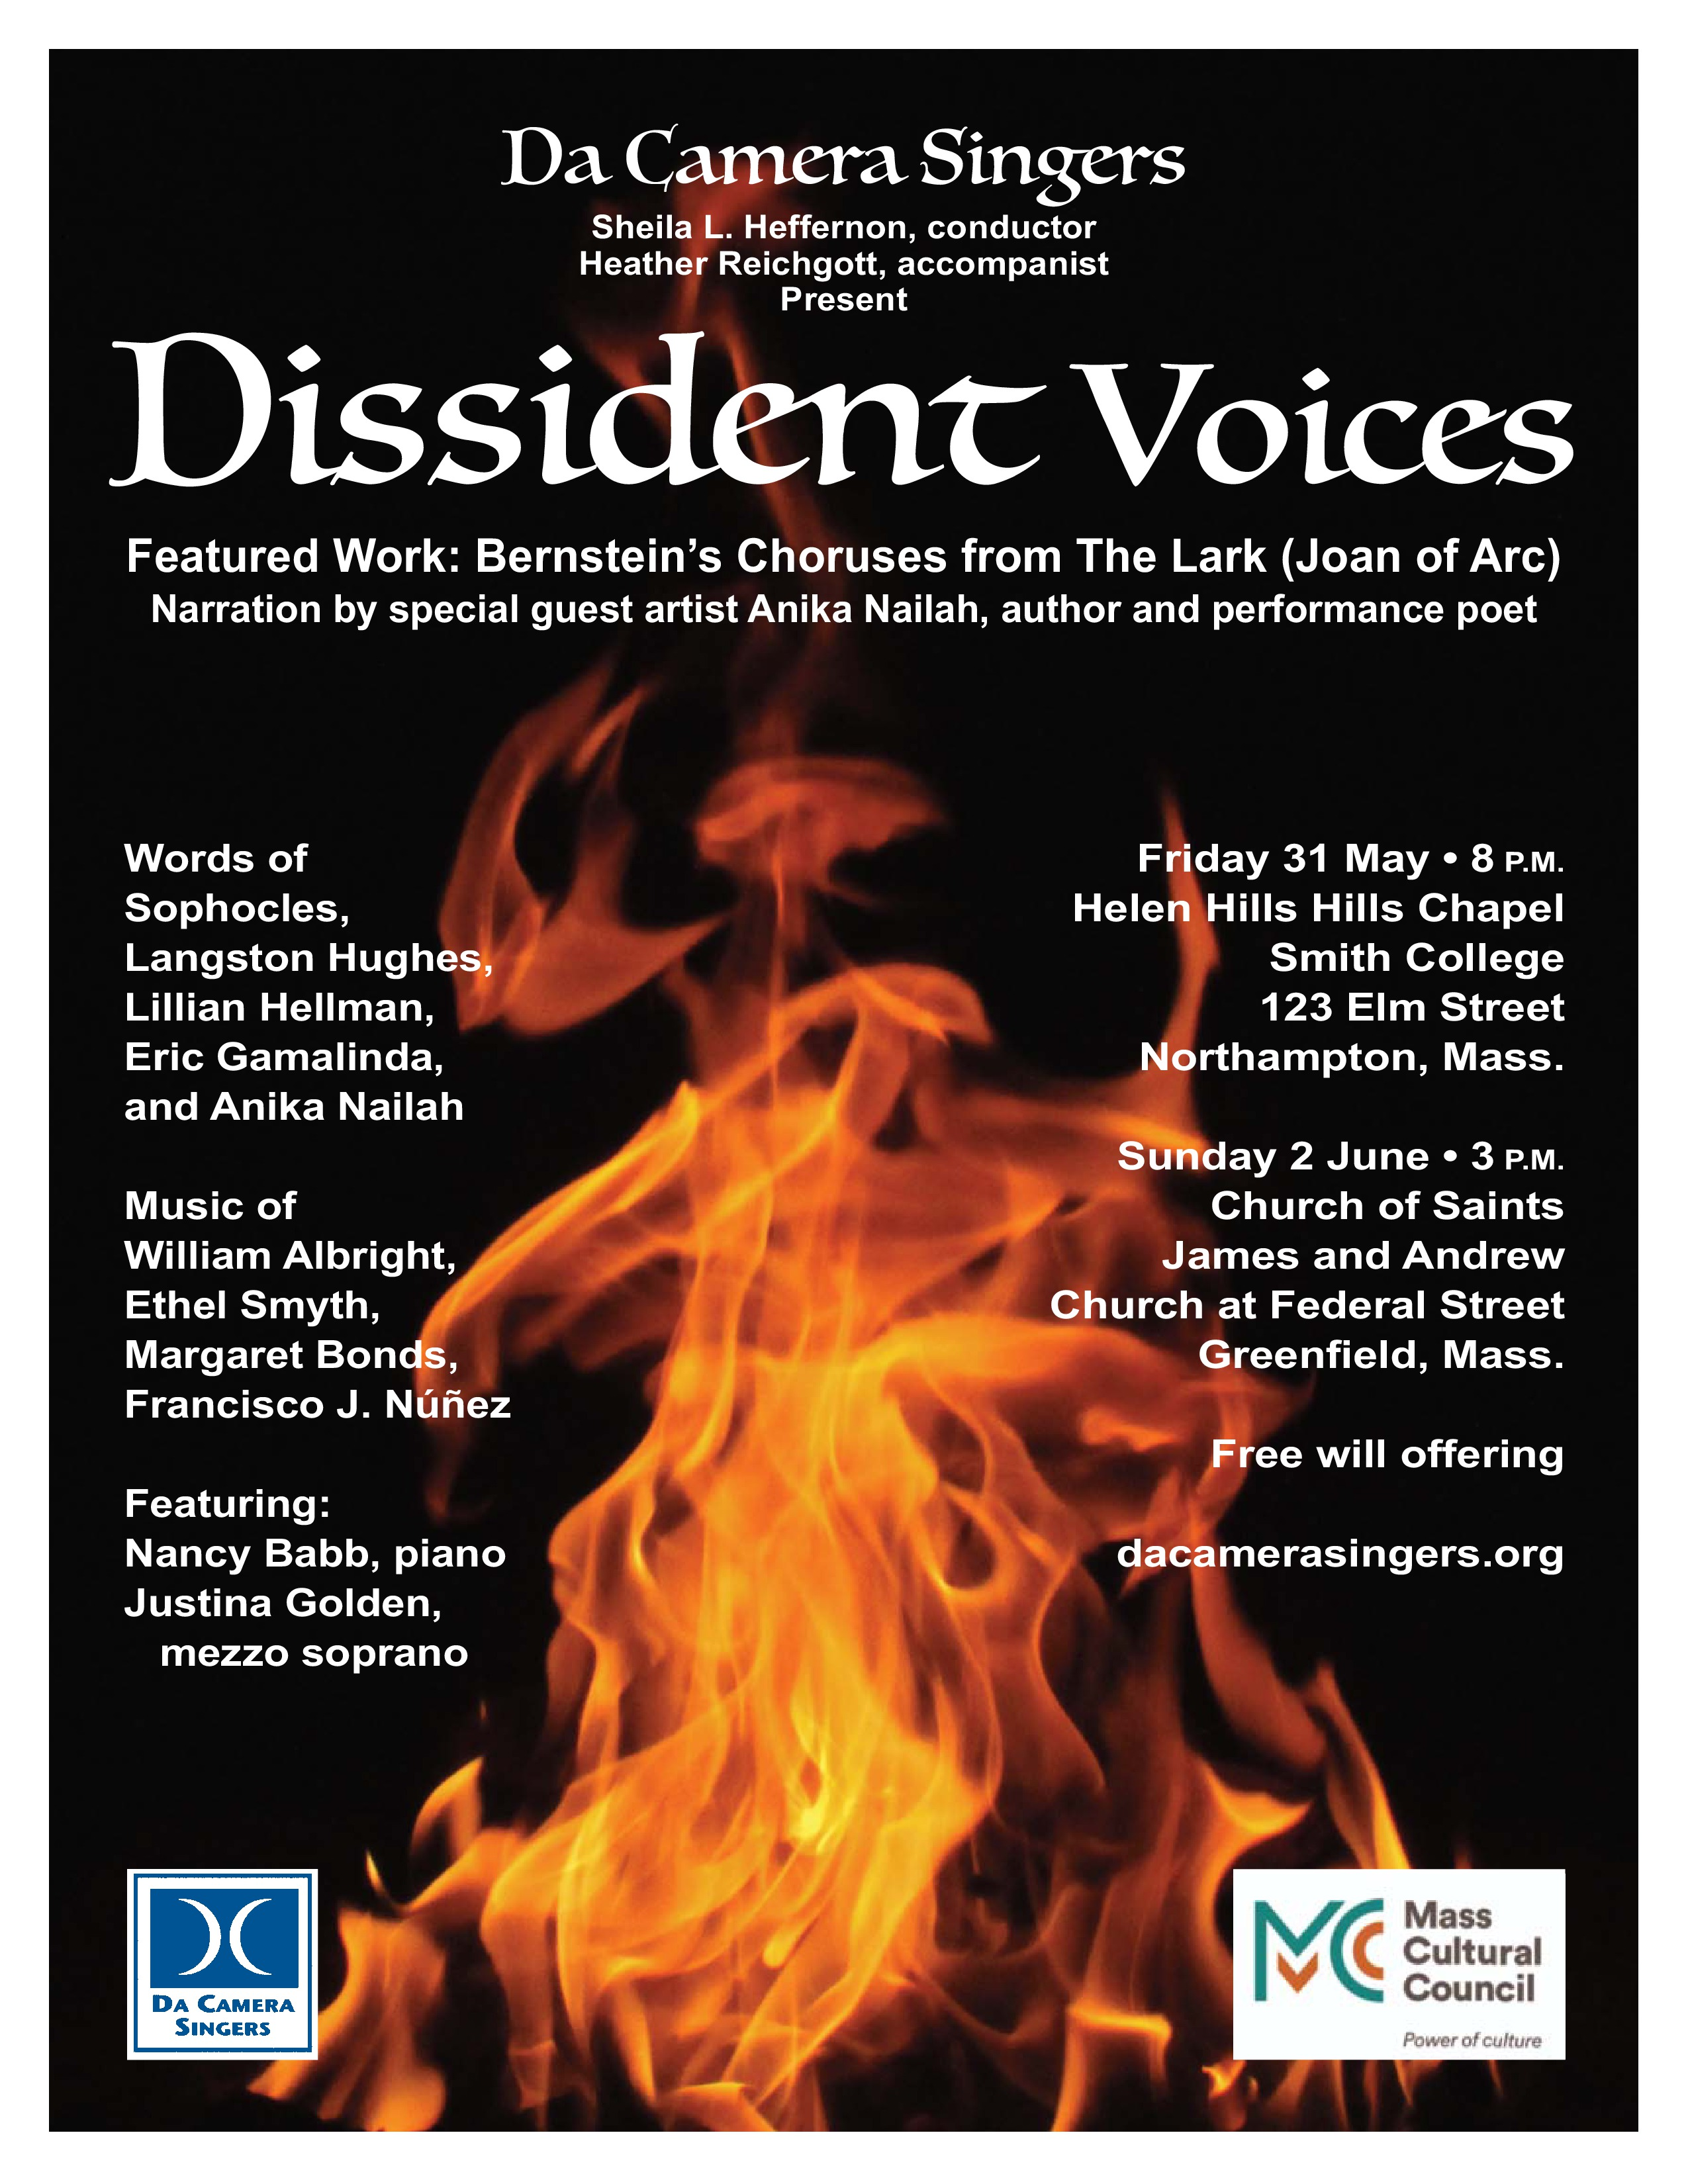 Dissident Voices: Northampton, MA @ Helen Hills Hills Chapel, Smith College